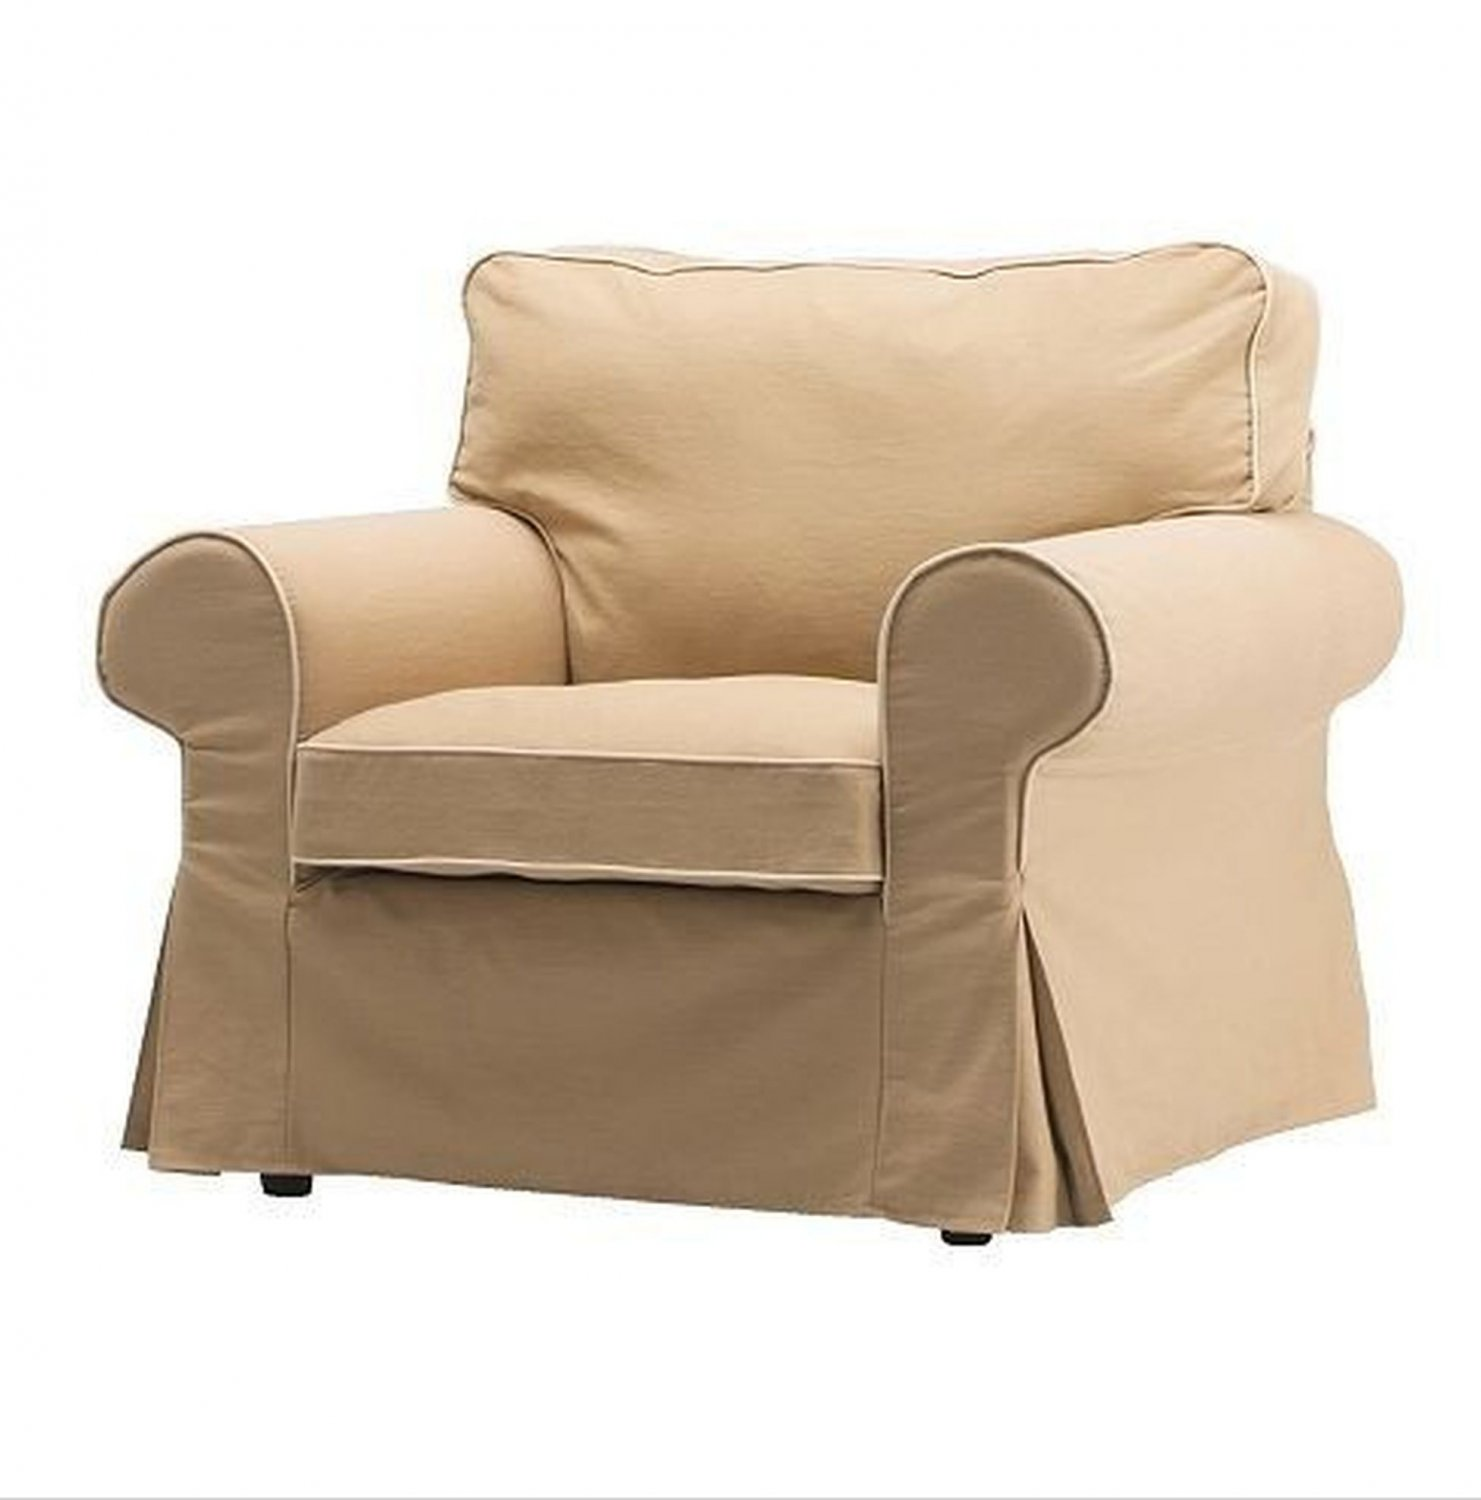 new ikea ektorp armchair slipcover cover idemo beige w piping. Black Bedroom Furniture Sets. Home Design Ideas